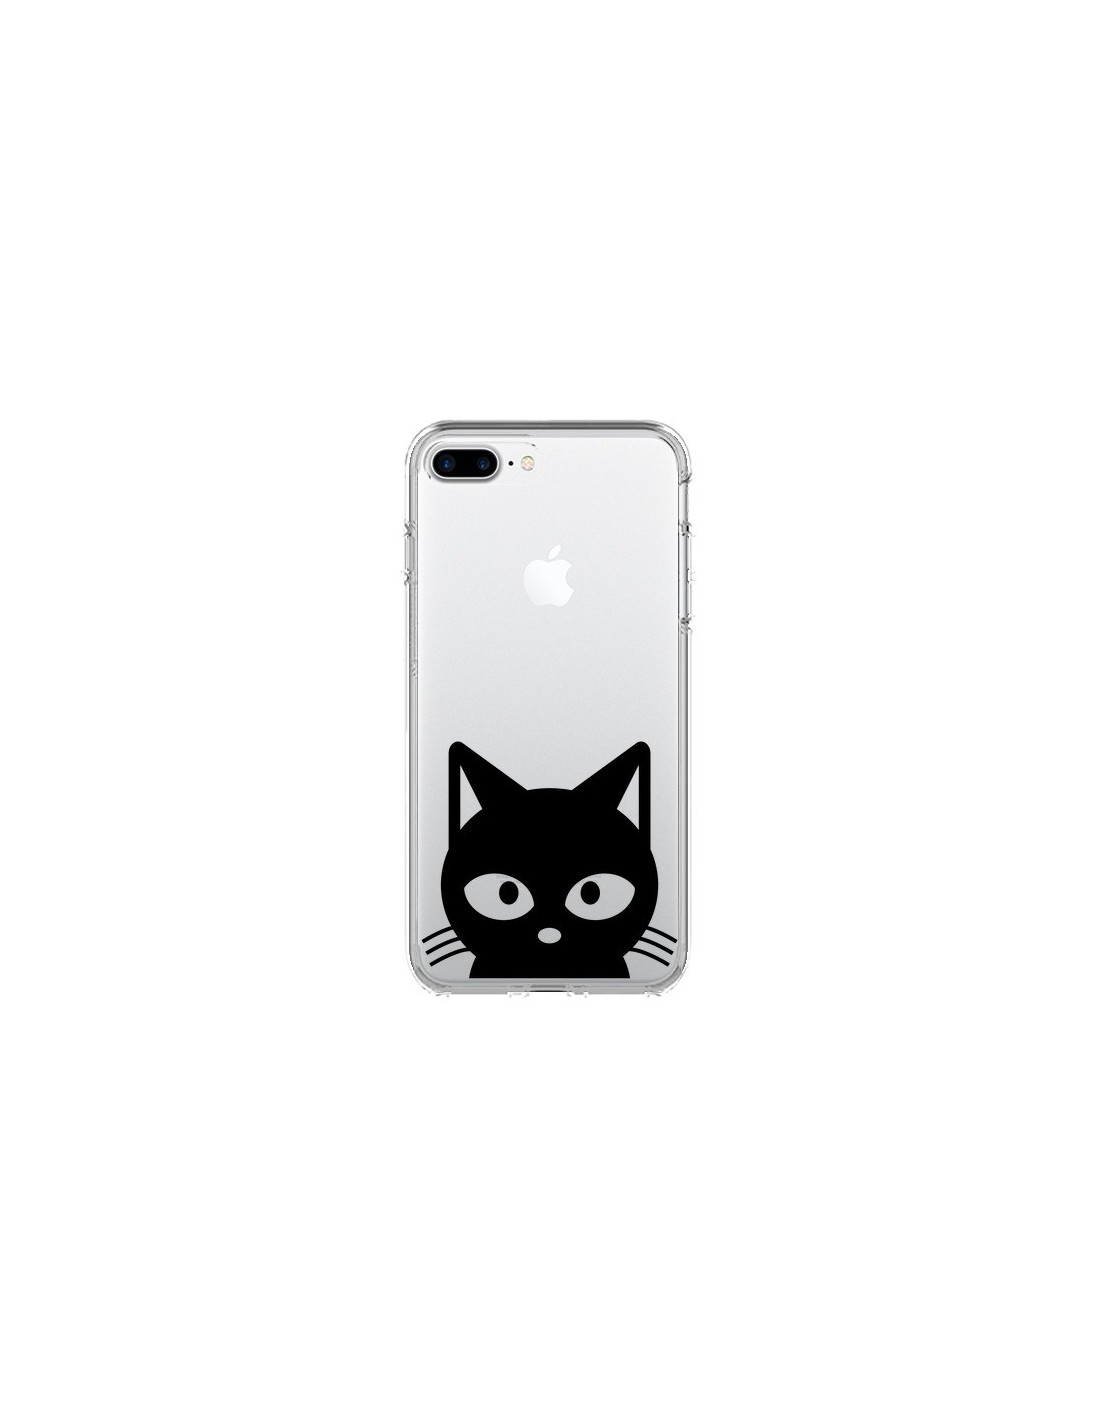 coque iphone 7 plus et 8 plus tete chat noir cat transparente yohan b